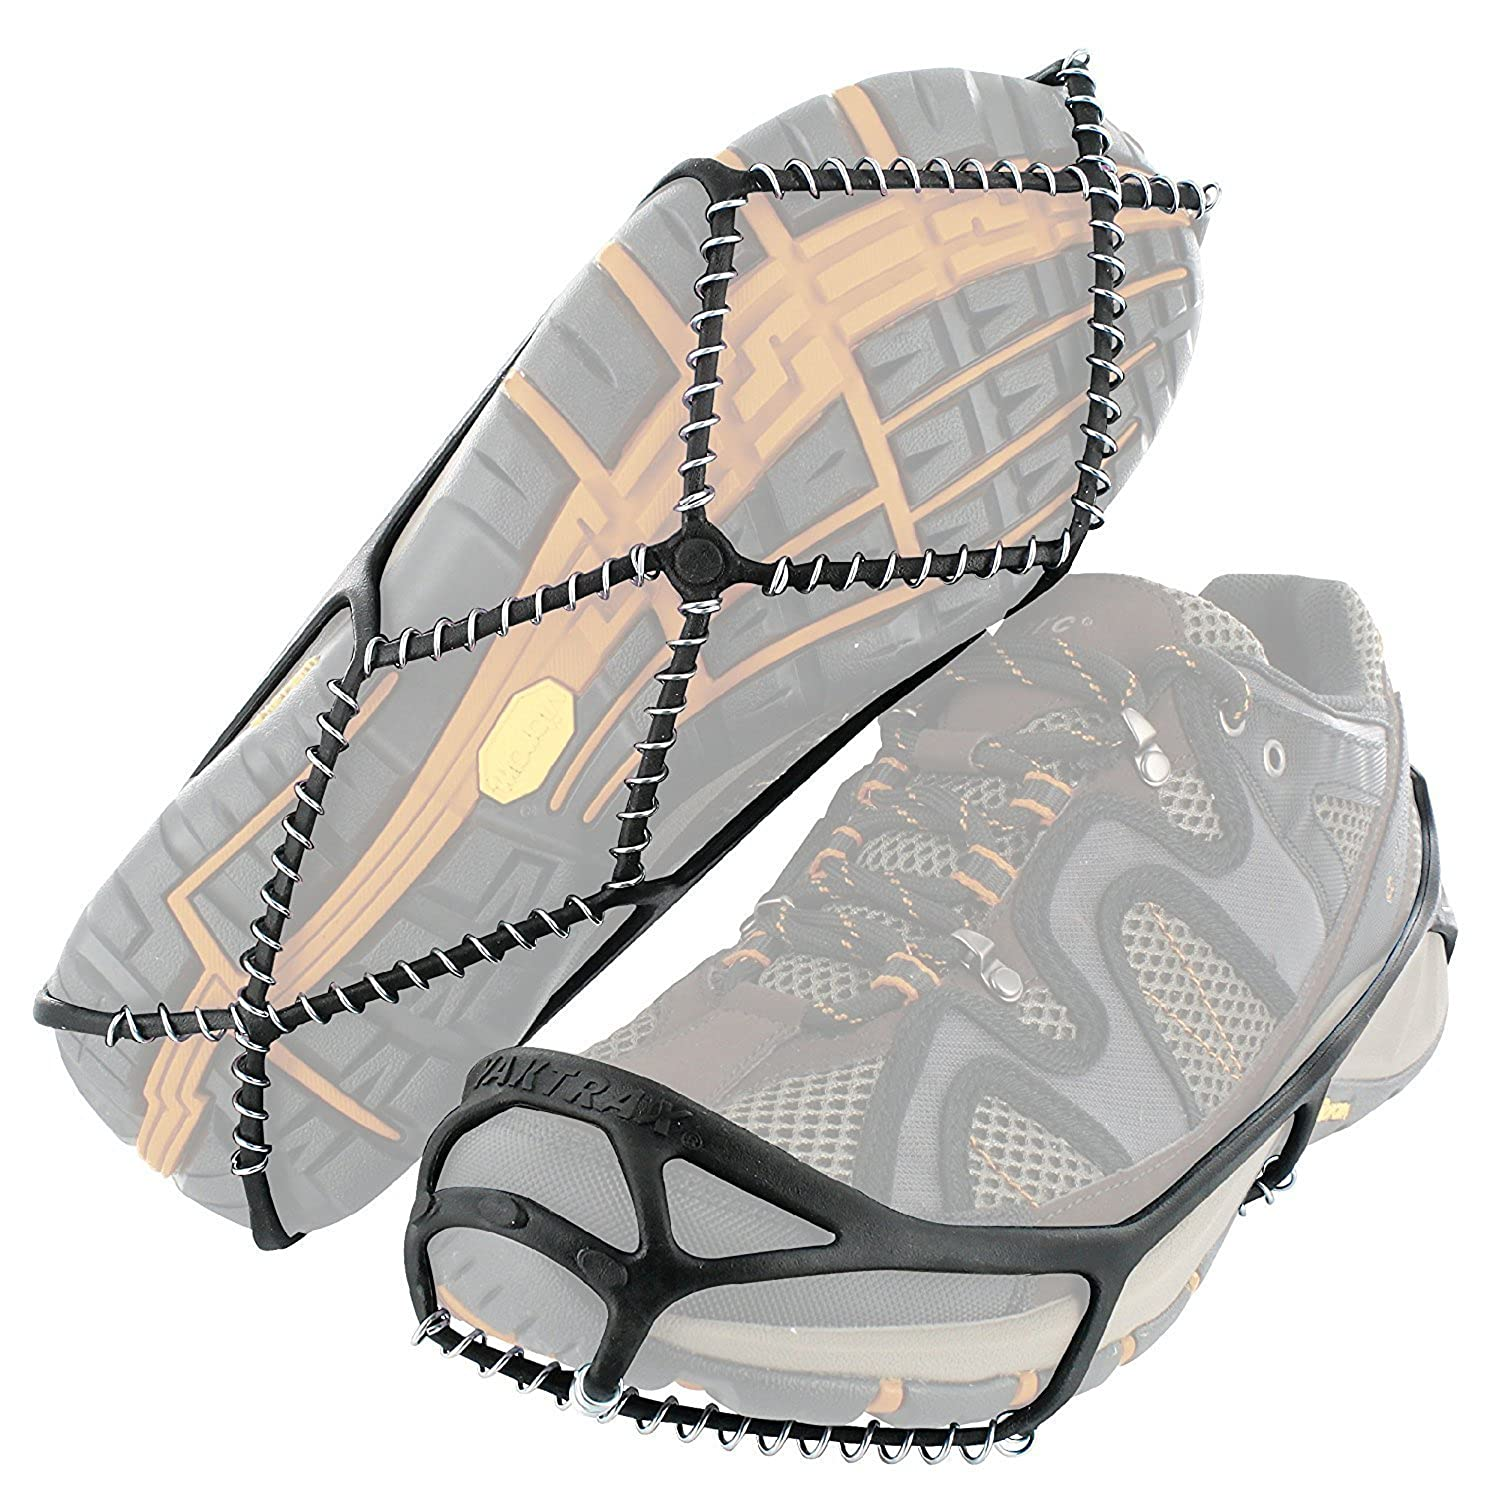 Yaktrax Walker safety anti-slip ice grips for regular footwear